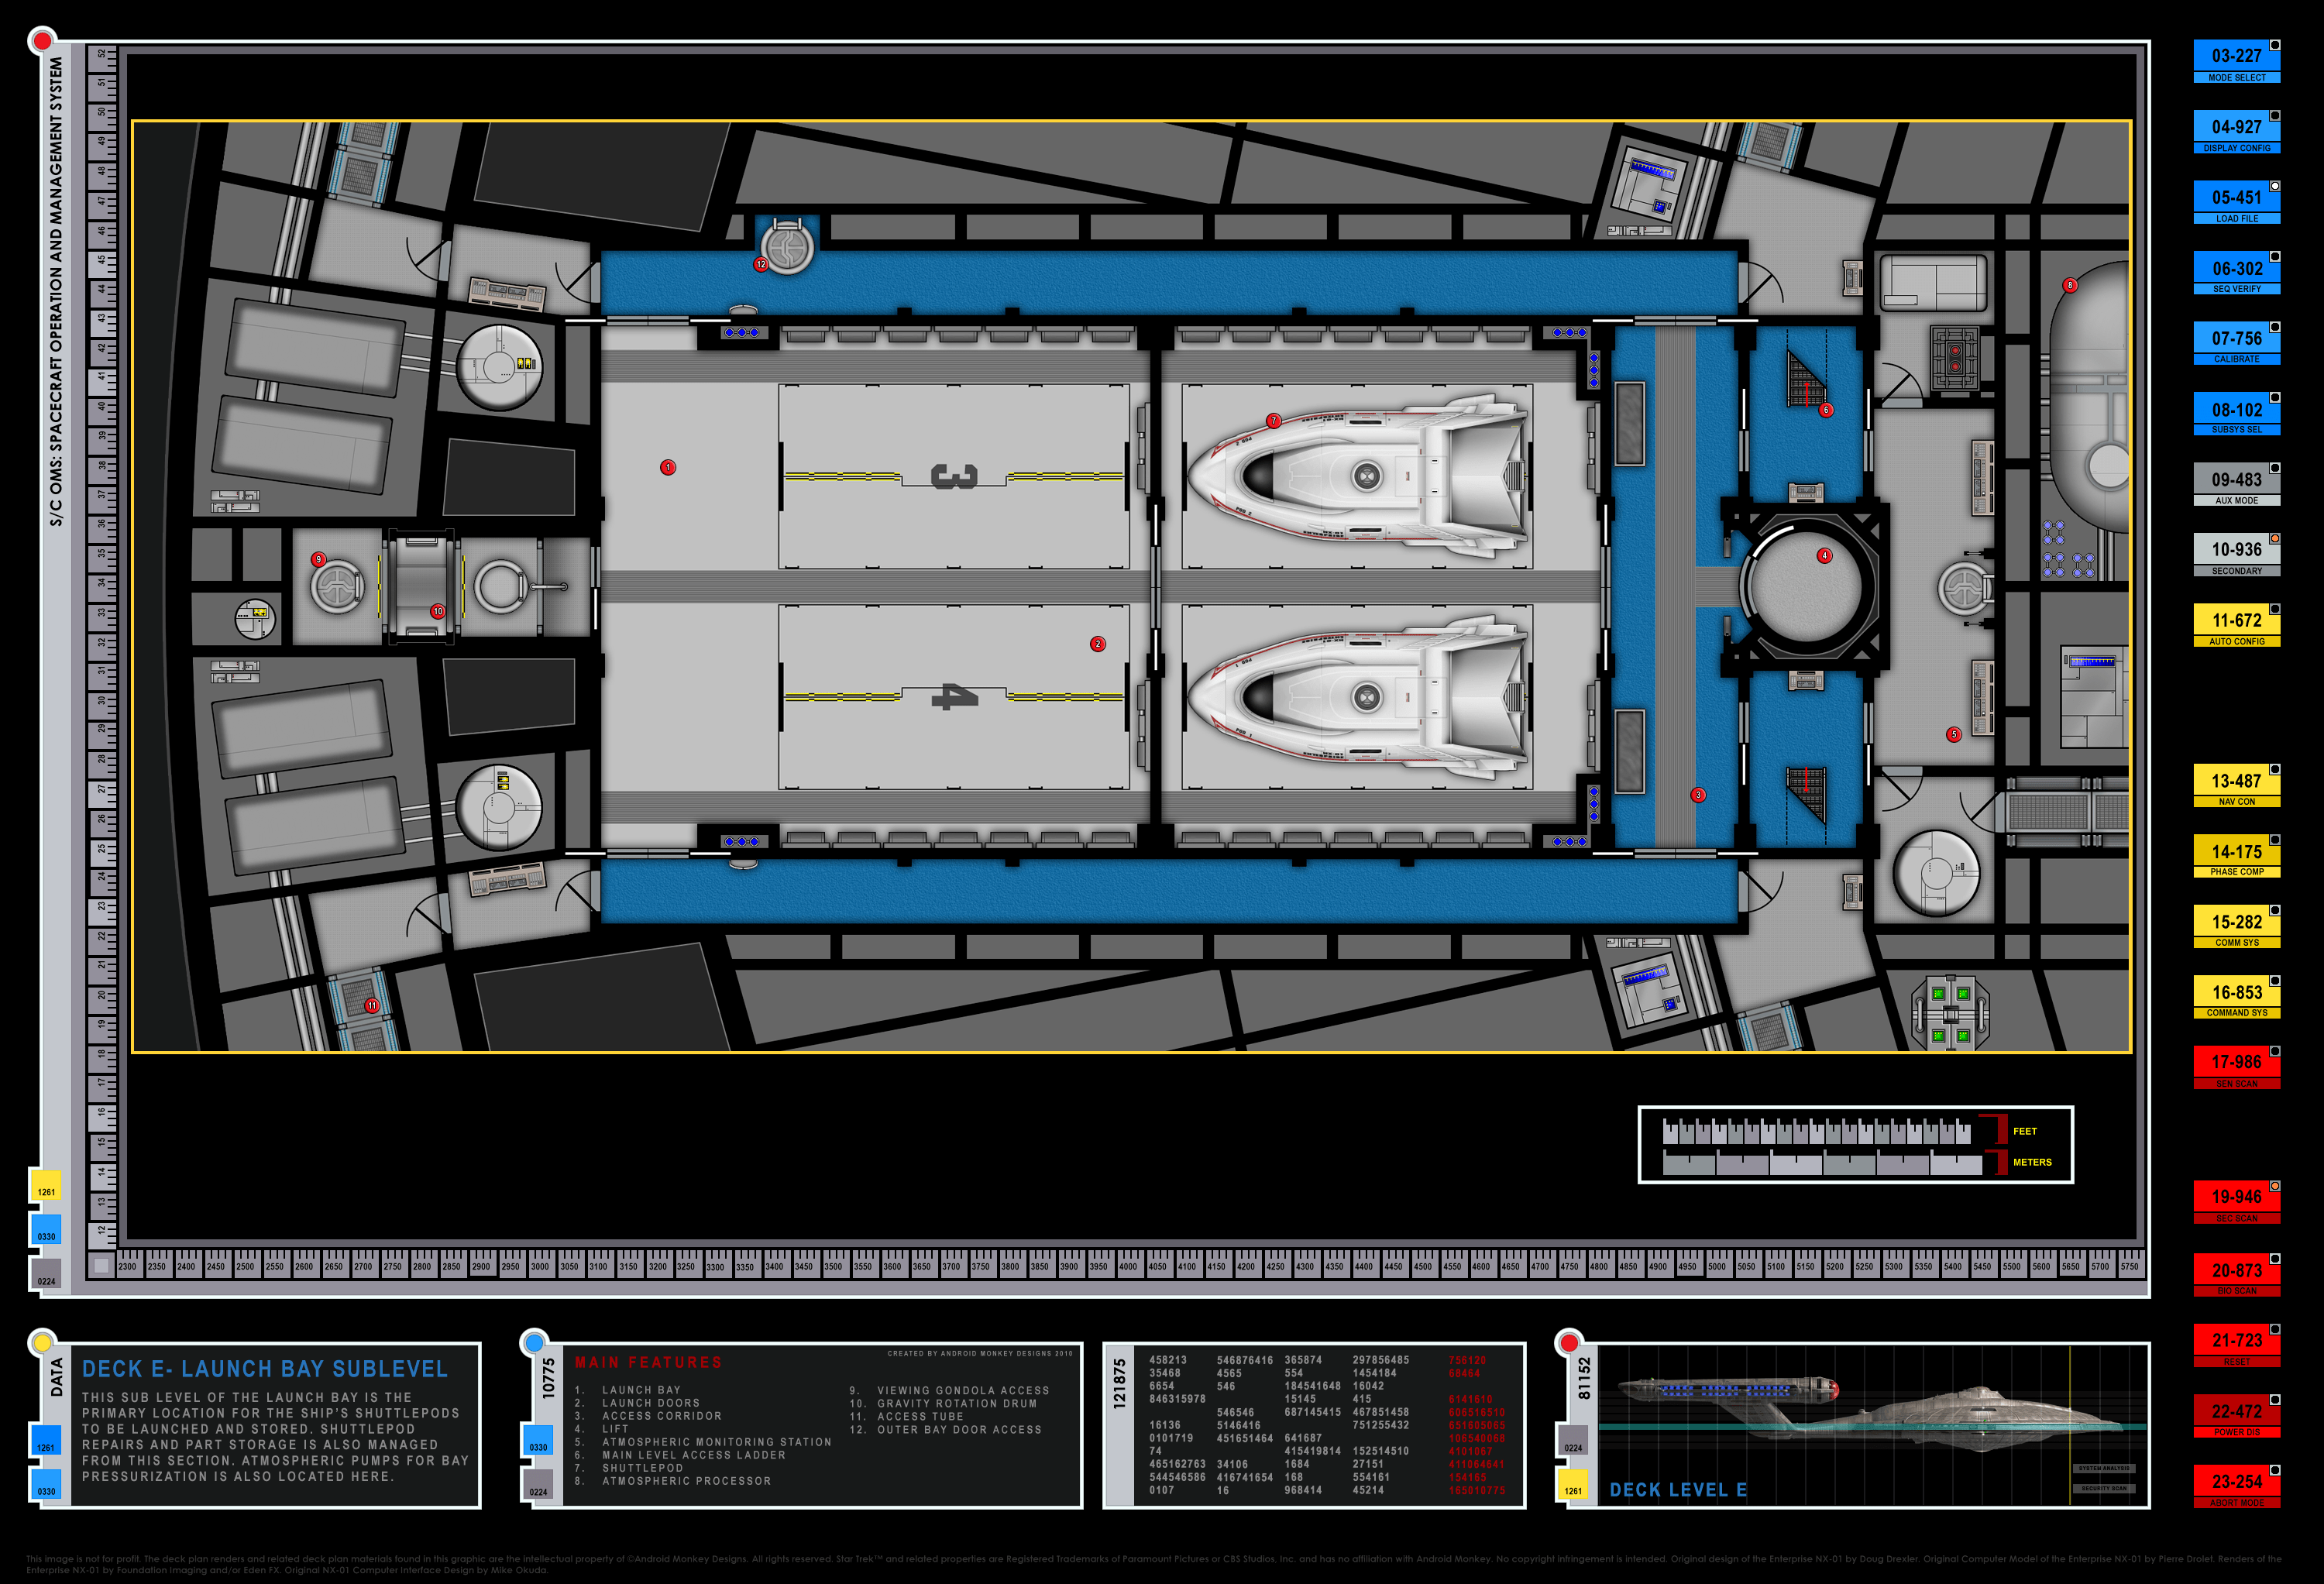 https://i0.wp.com/www.waxingmoondesign.com/images/Enterprise_NX-01_Launch_Bay_2_Detail_PV.png